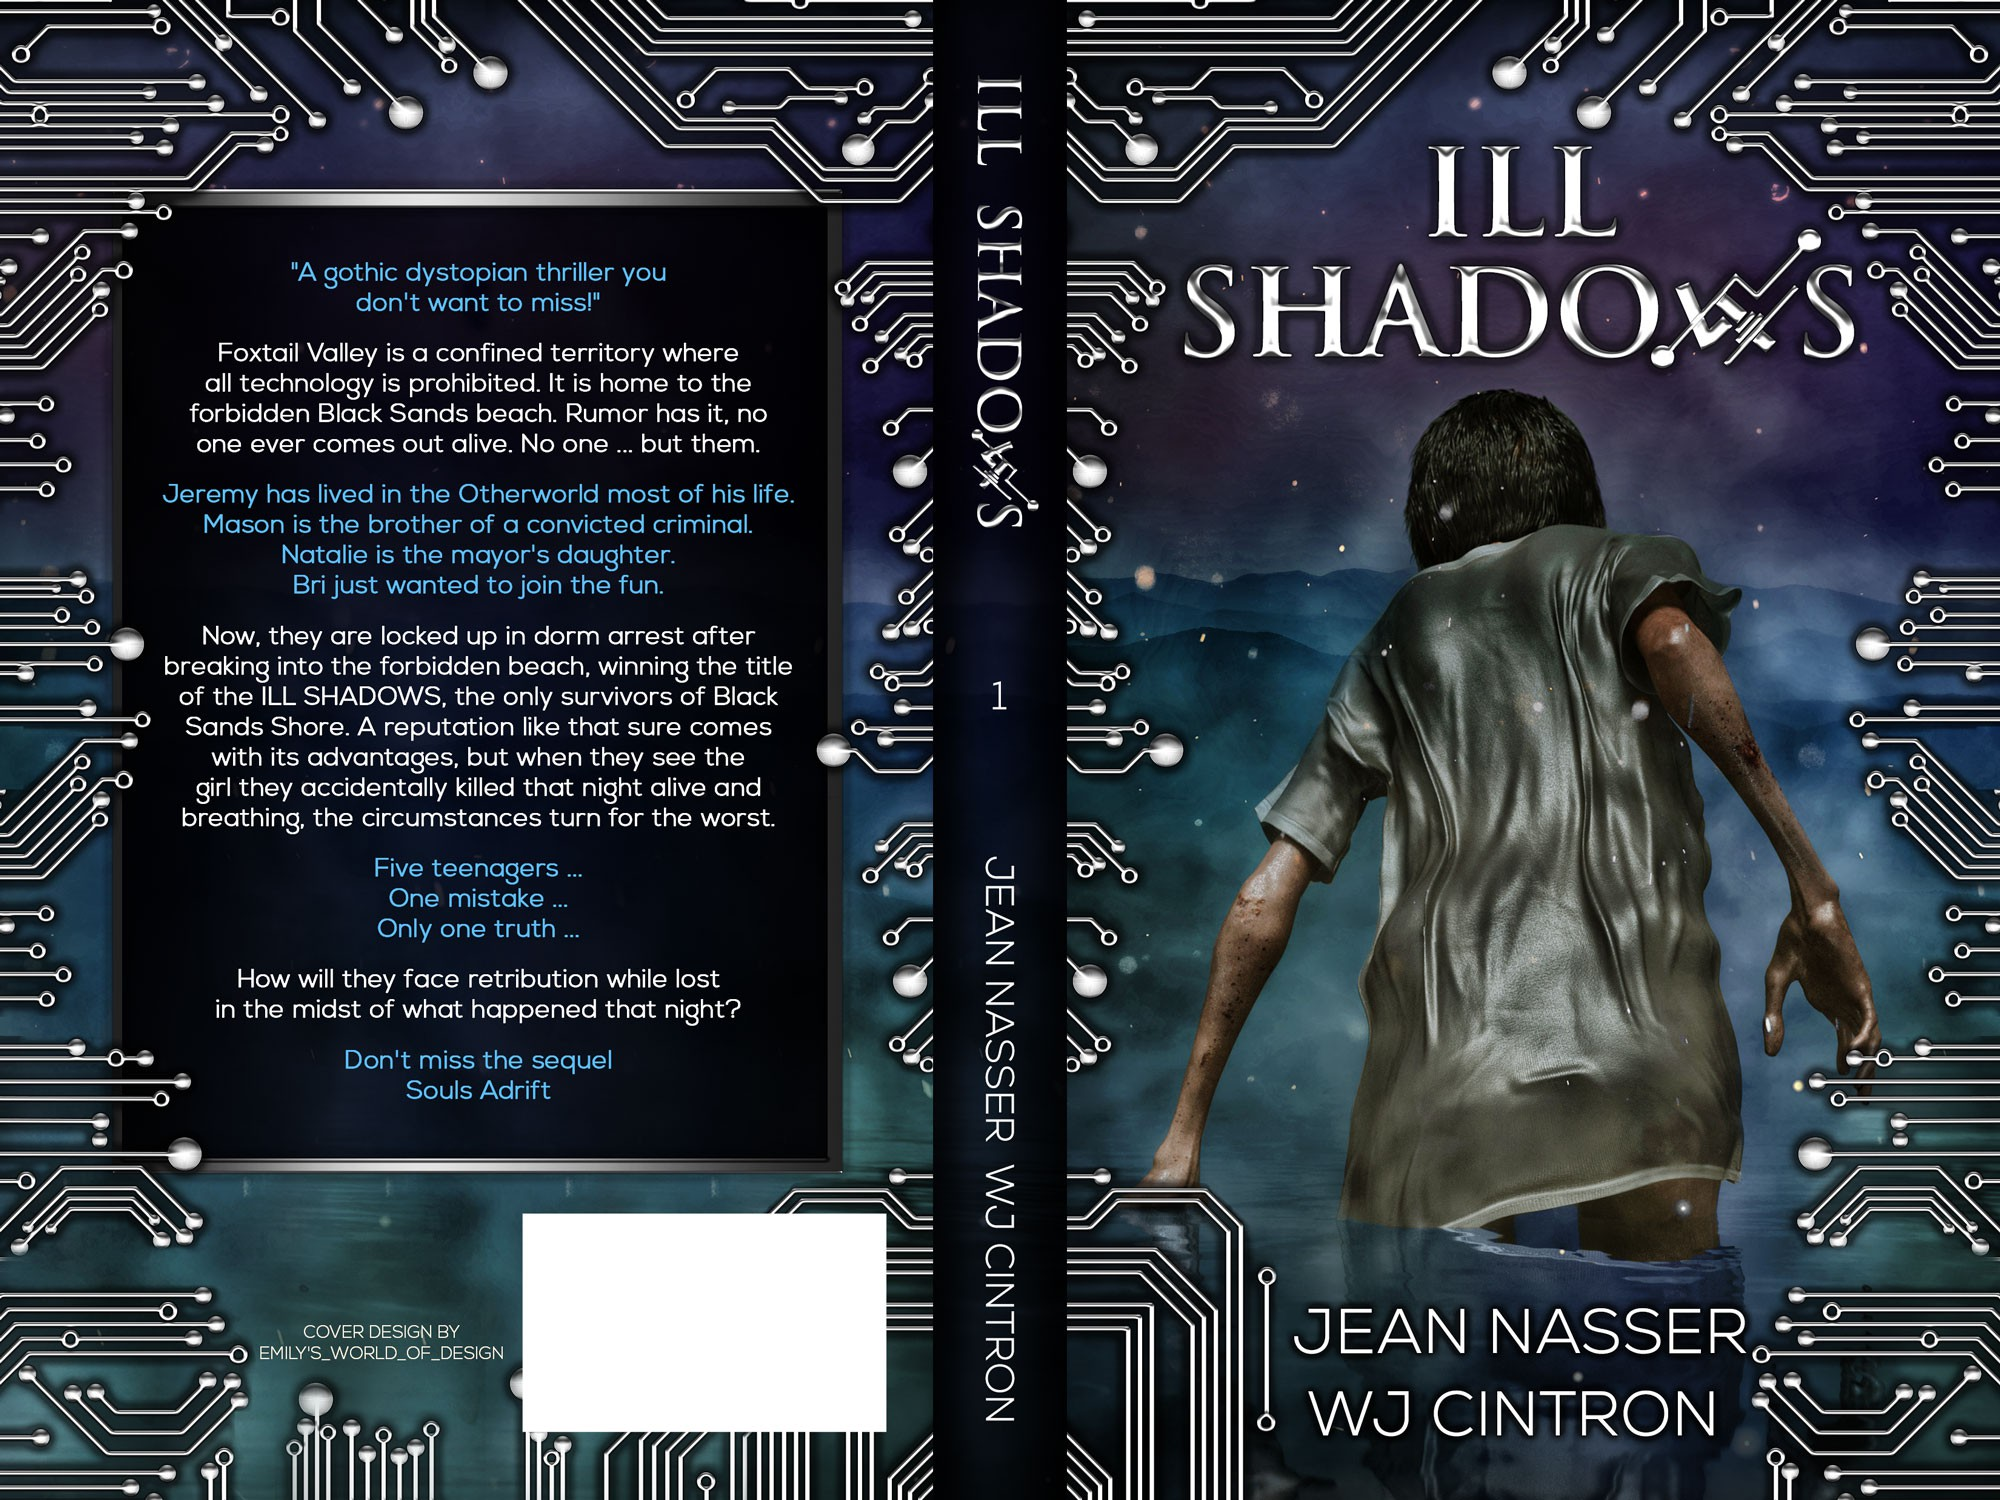 Ill Shadows, a young adult book under the dystopian, gothic thriller genre with sci fi elements.